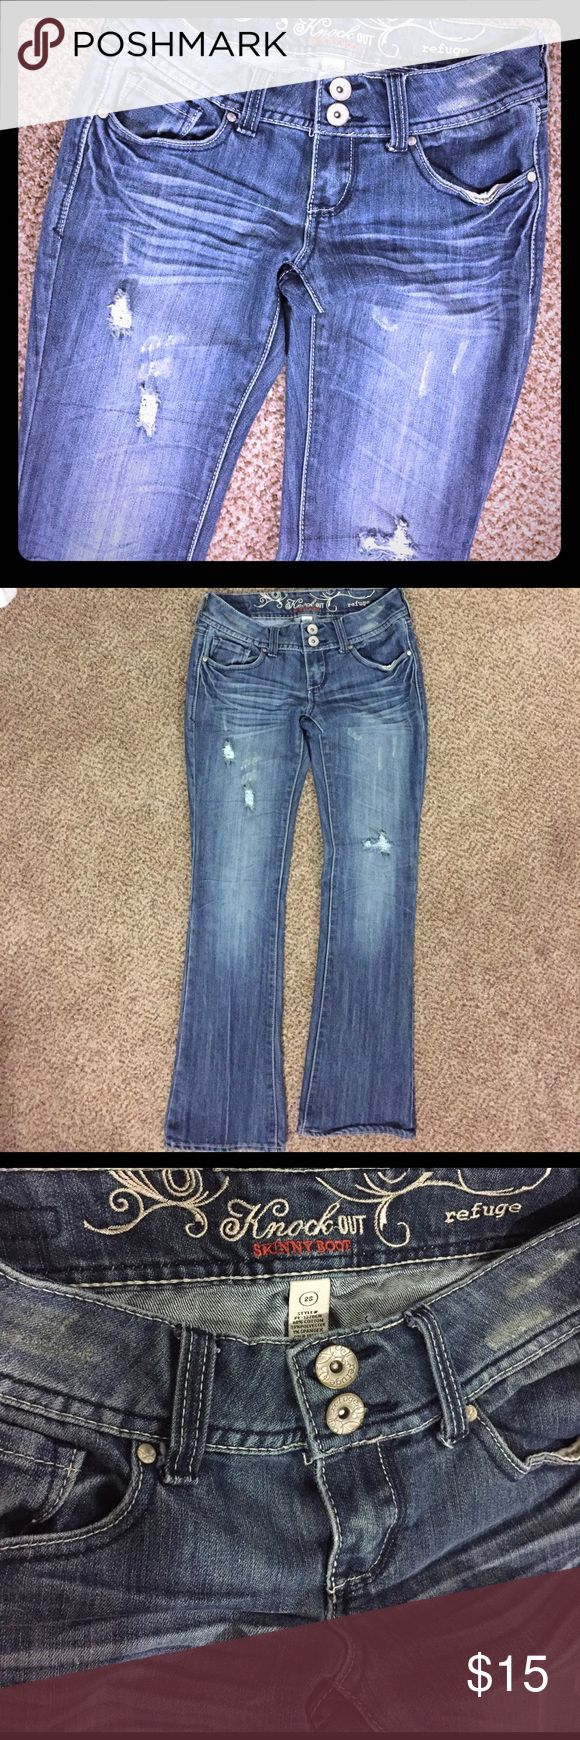 Refuge women's distressed jeans. Skinny Boot Sz 25 Refuge women's distressed jeans. Skinny Boot Size 25, has a stretch to it so I believe could fit bigger as well, in great condition! refuge Jeans Boot Cut